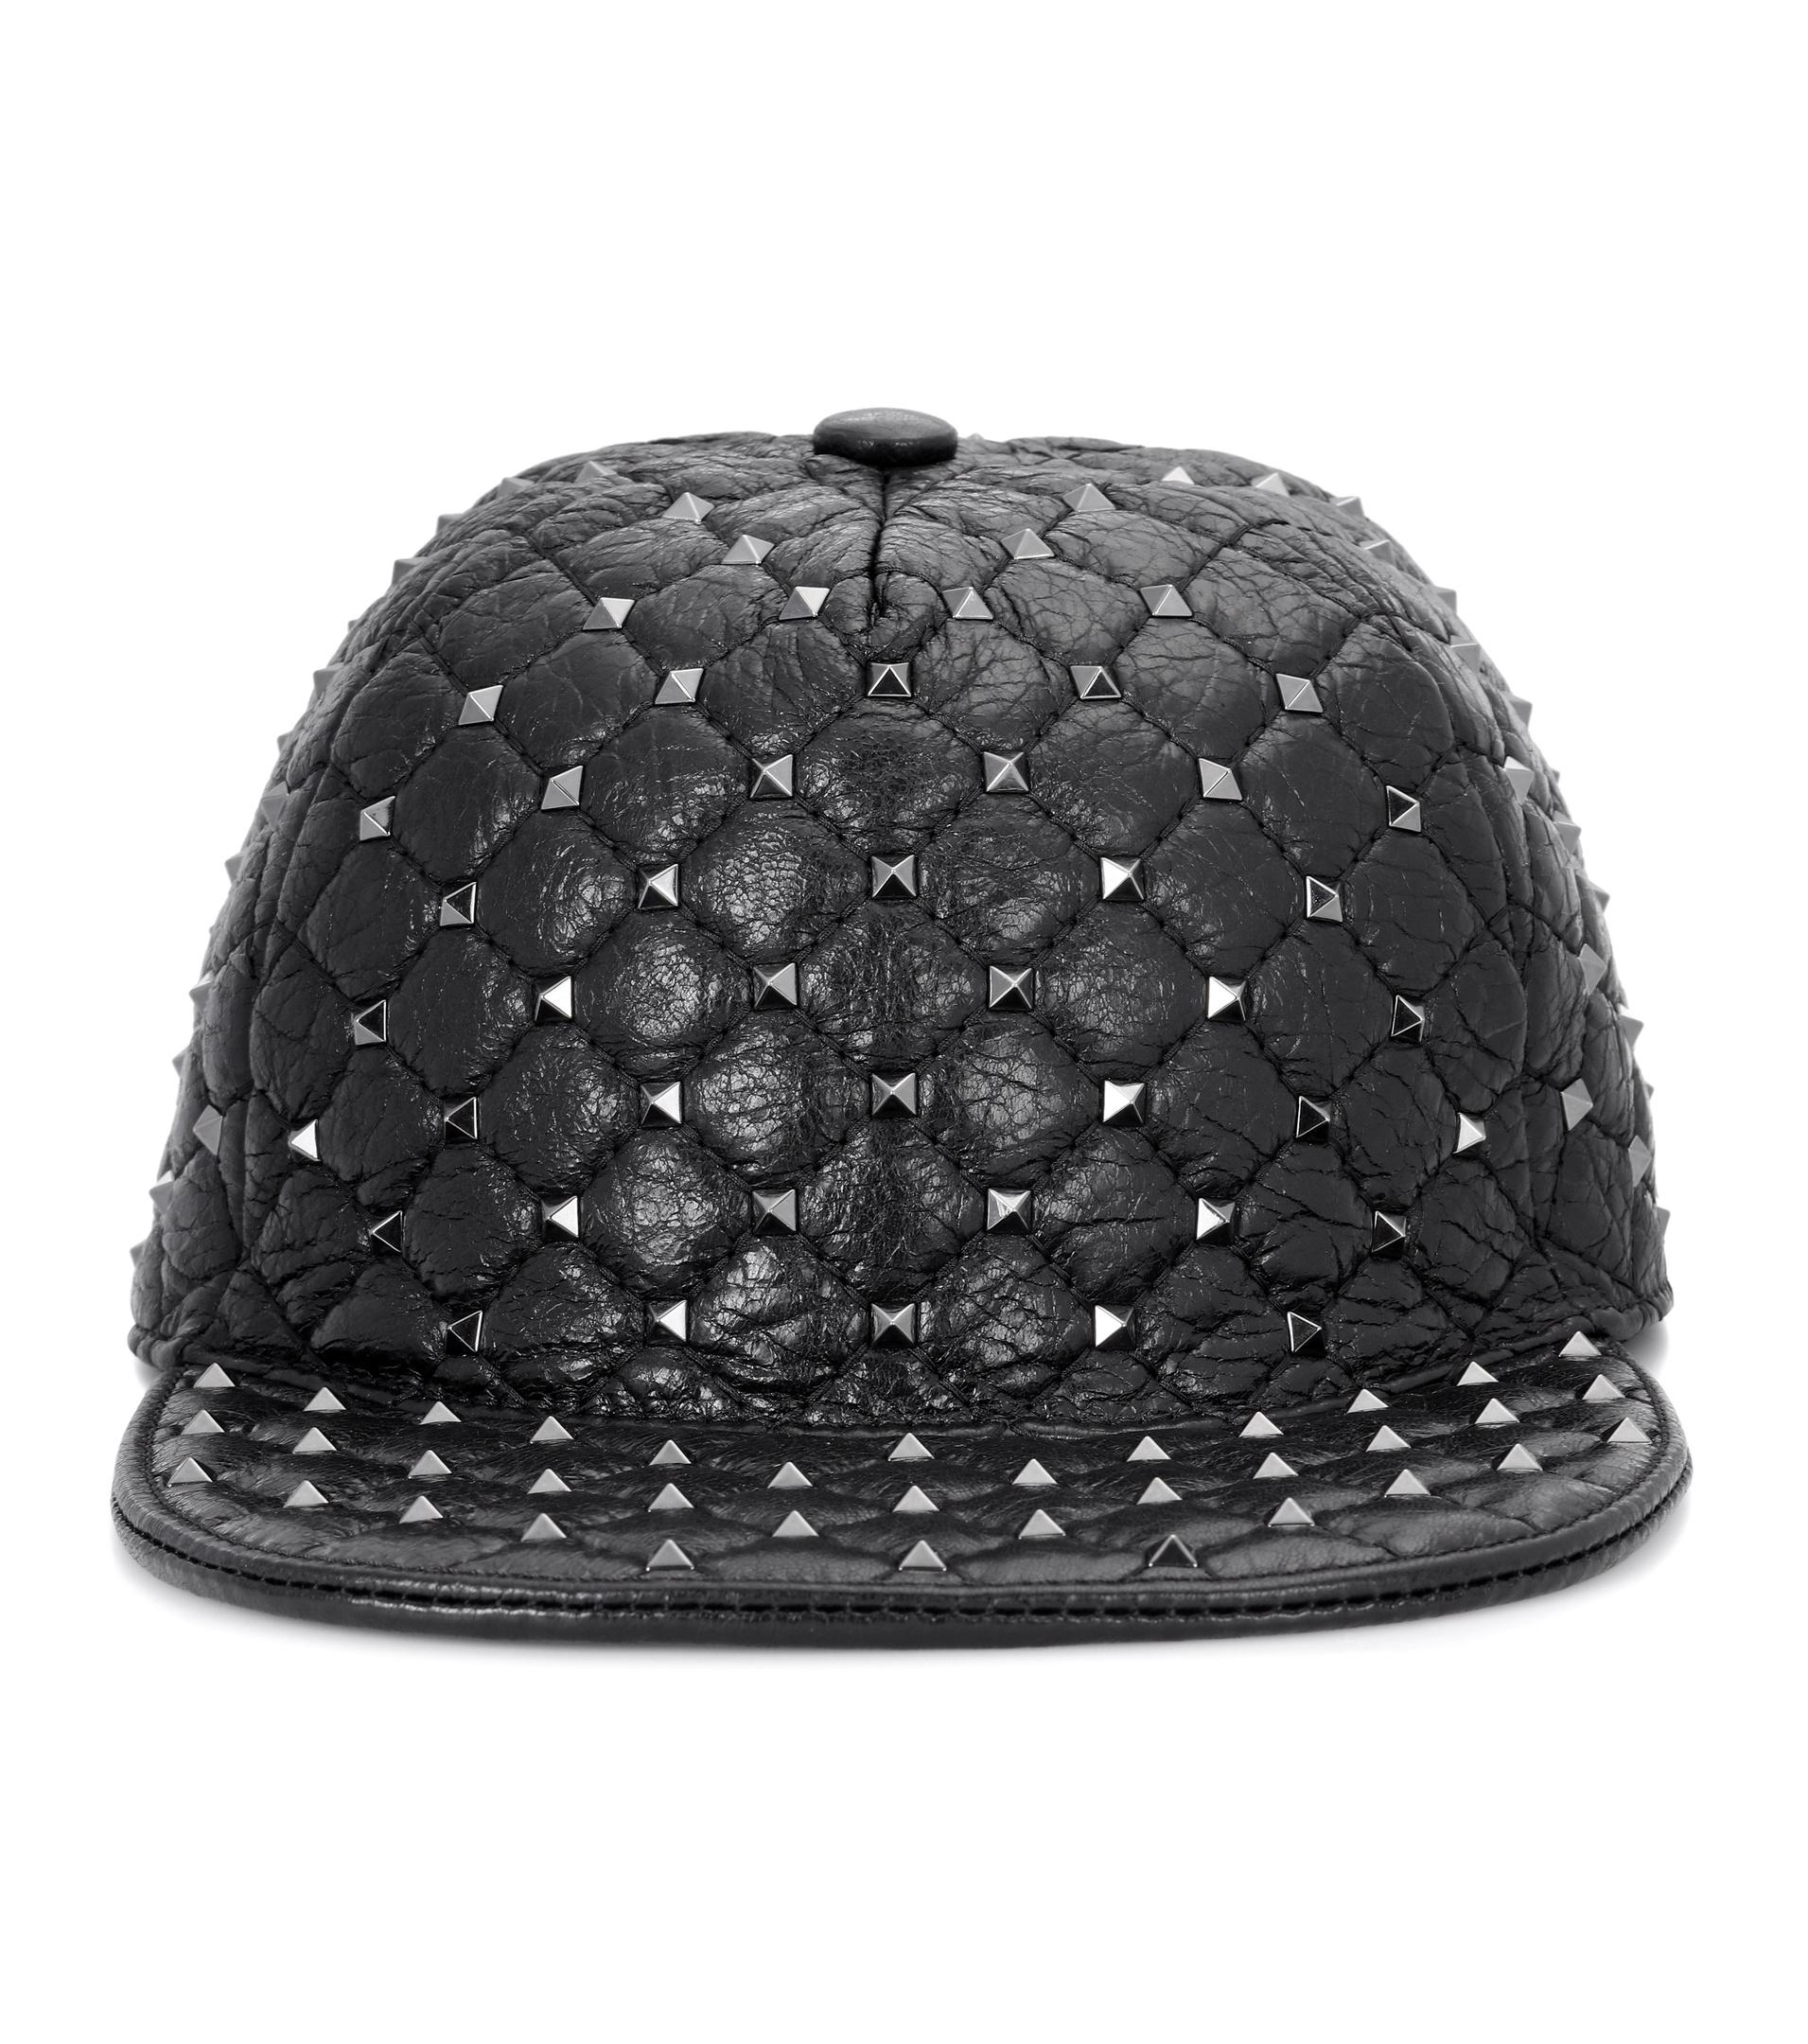 c58e924a063 Lyst - Valentino Rockstud Leather Hat in Black